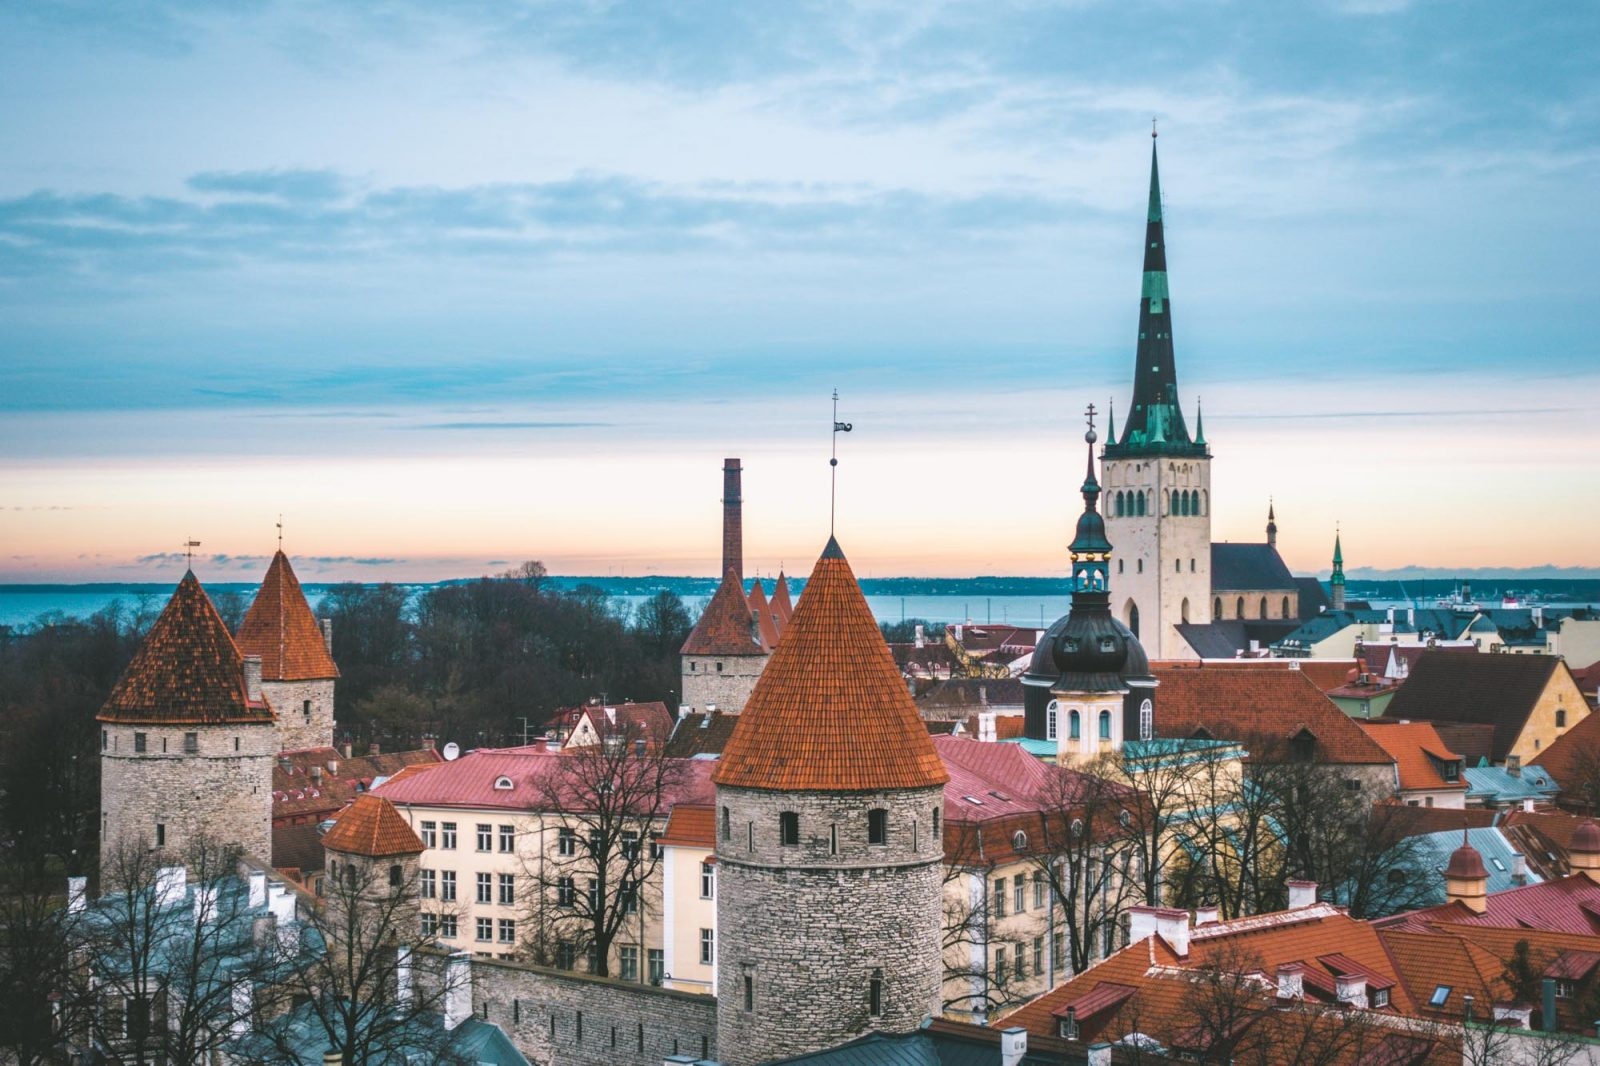 Things to do in Tallinn: St Olaf's Church rises above all other buildings in Old Town Tallinn